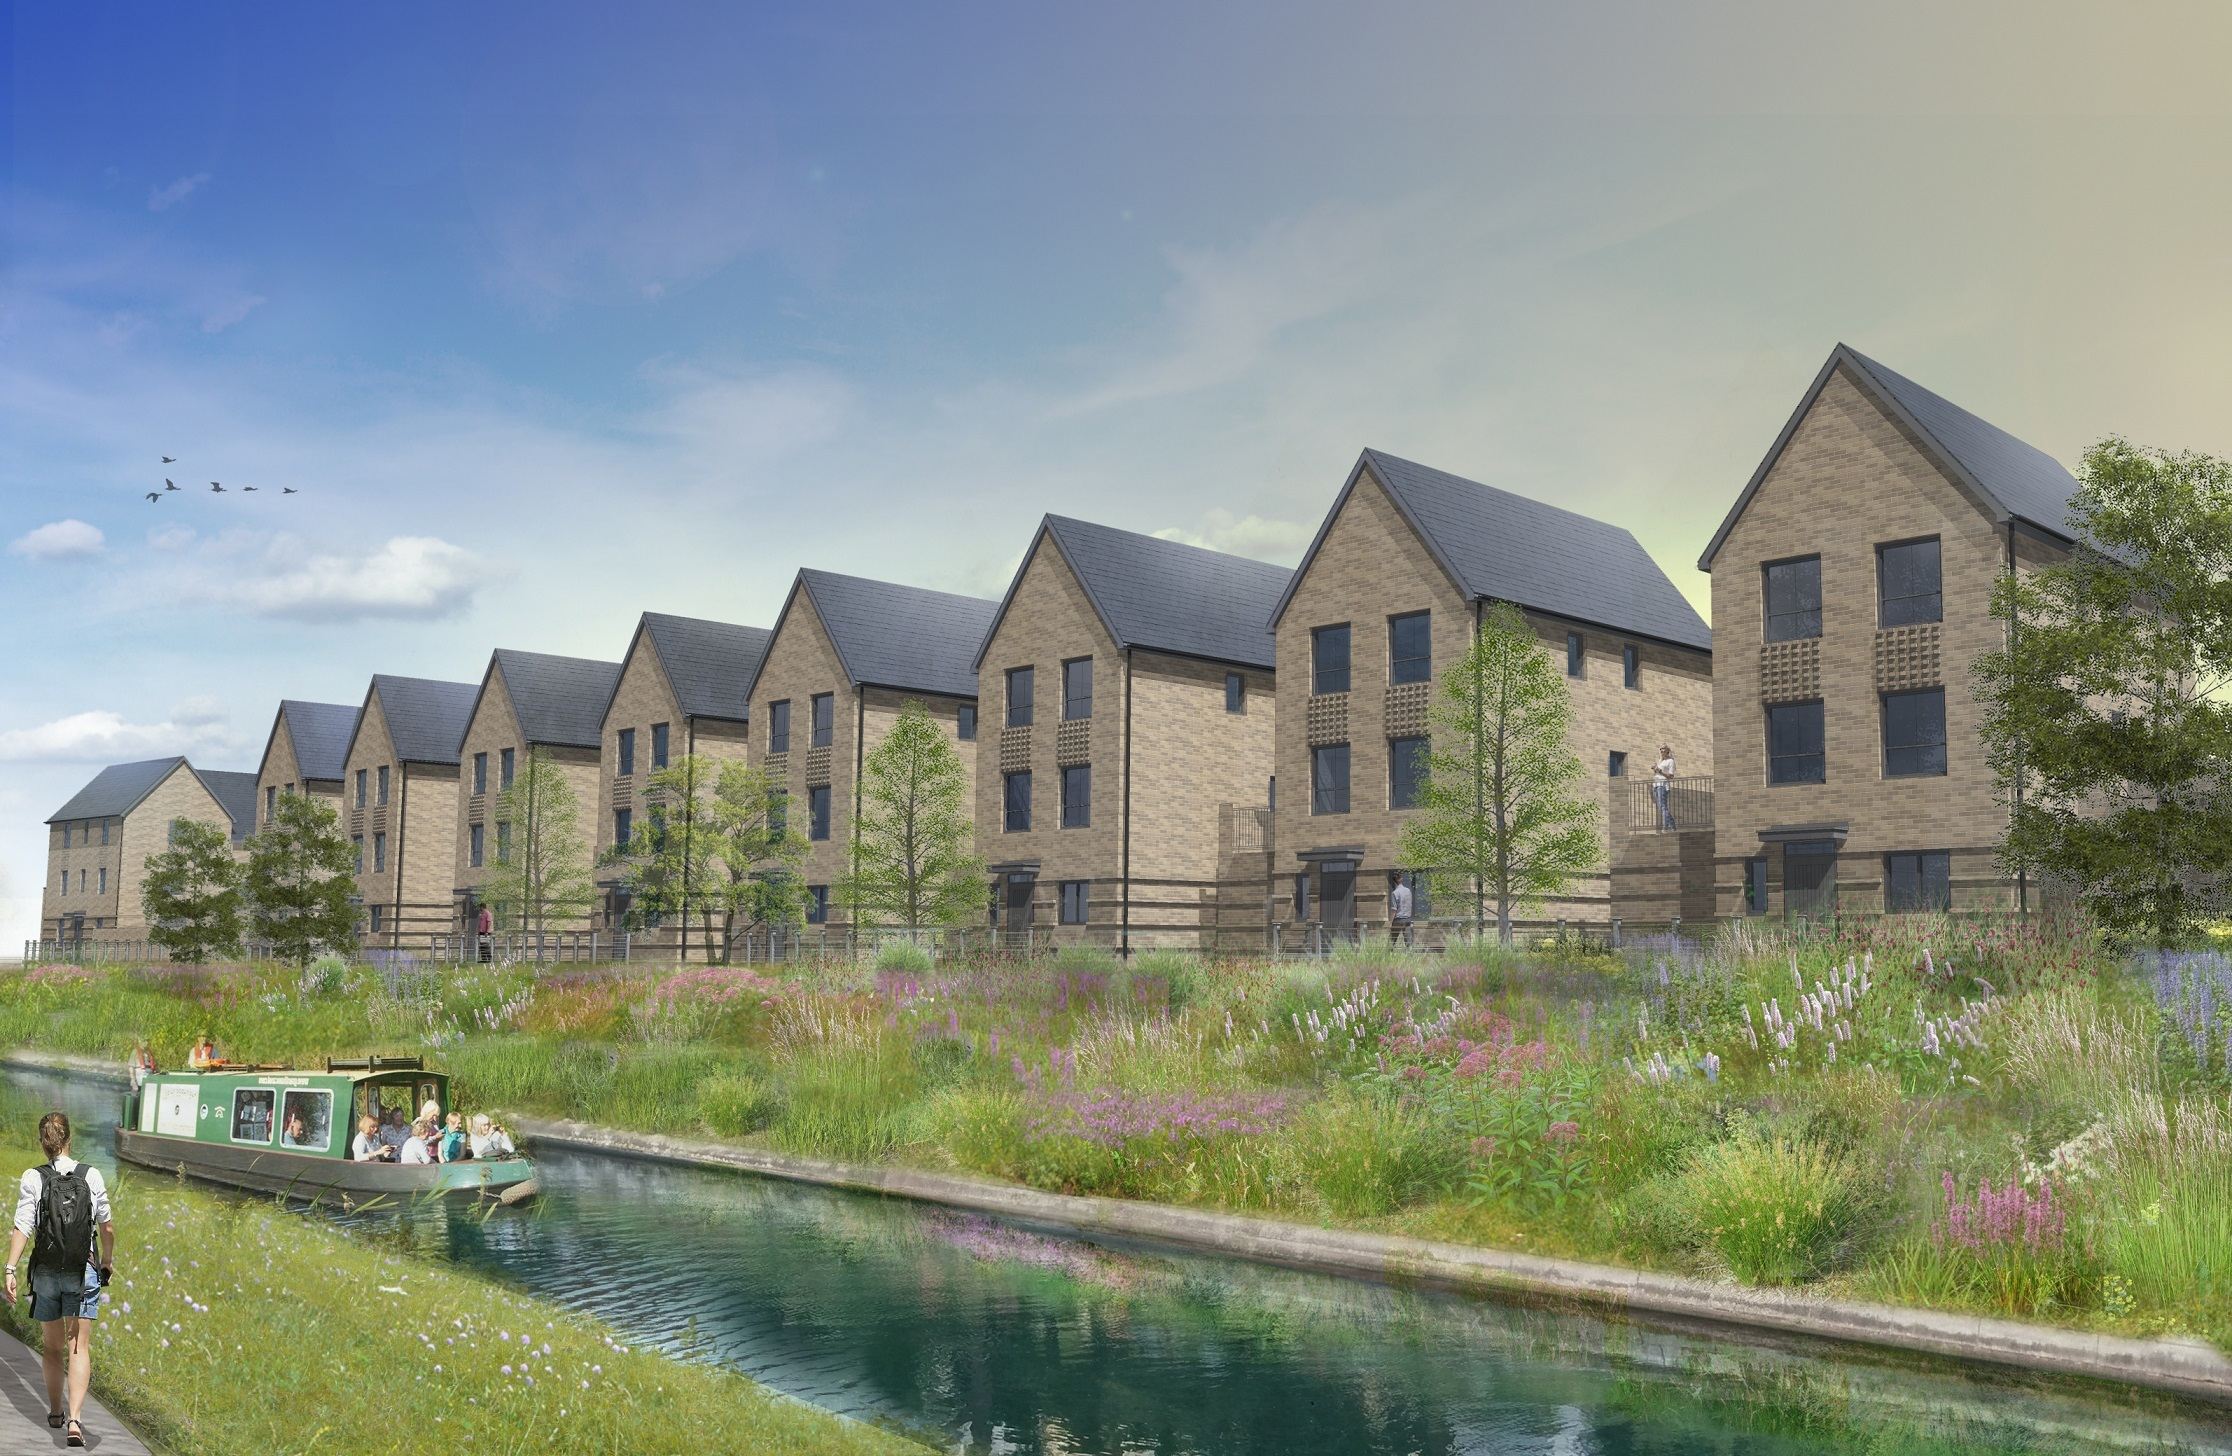 An idea of the Canalside development once completed